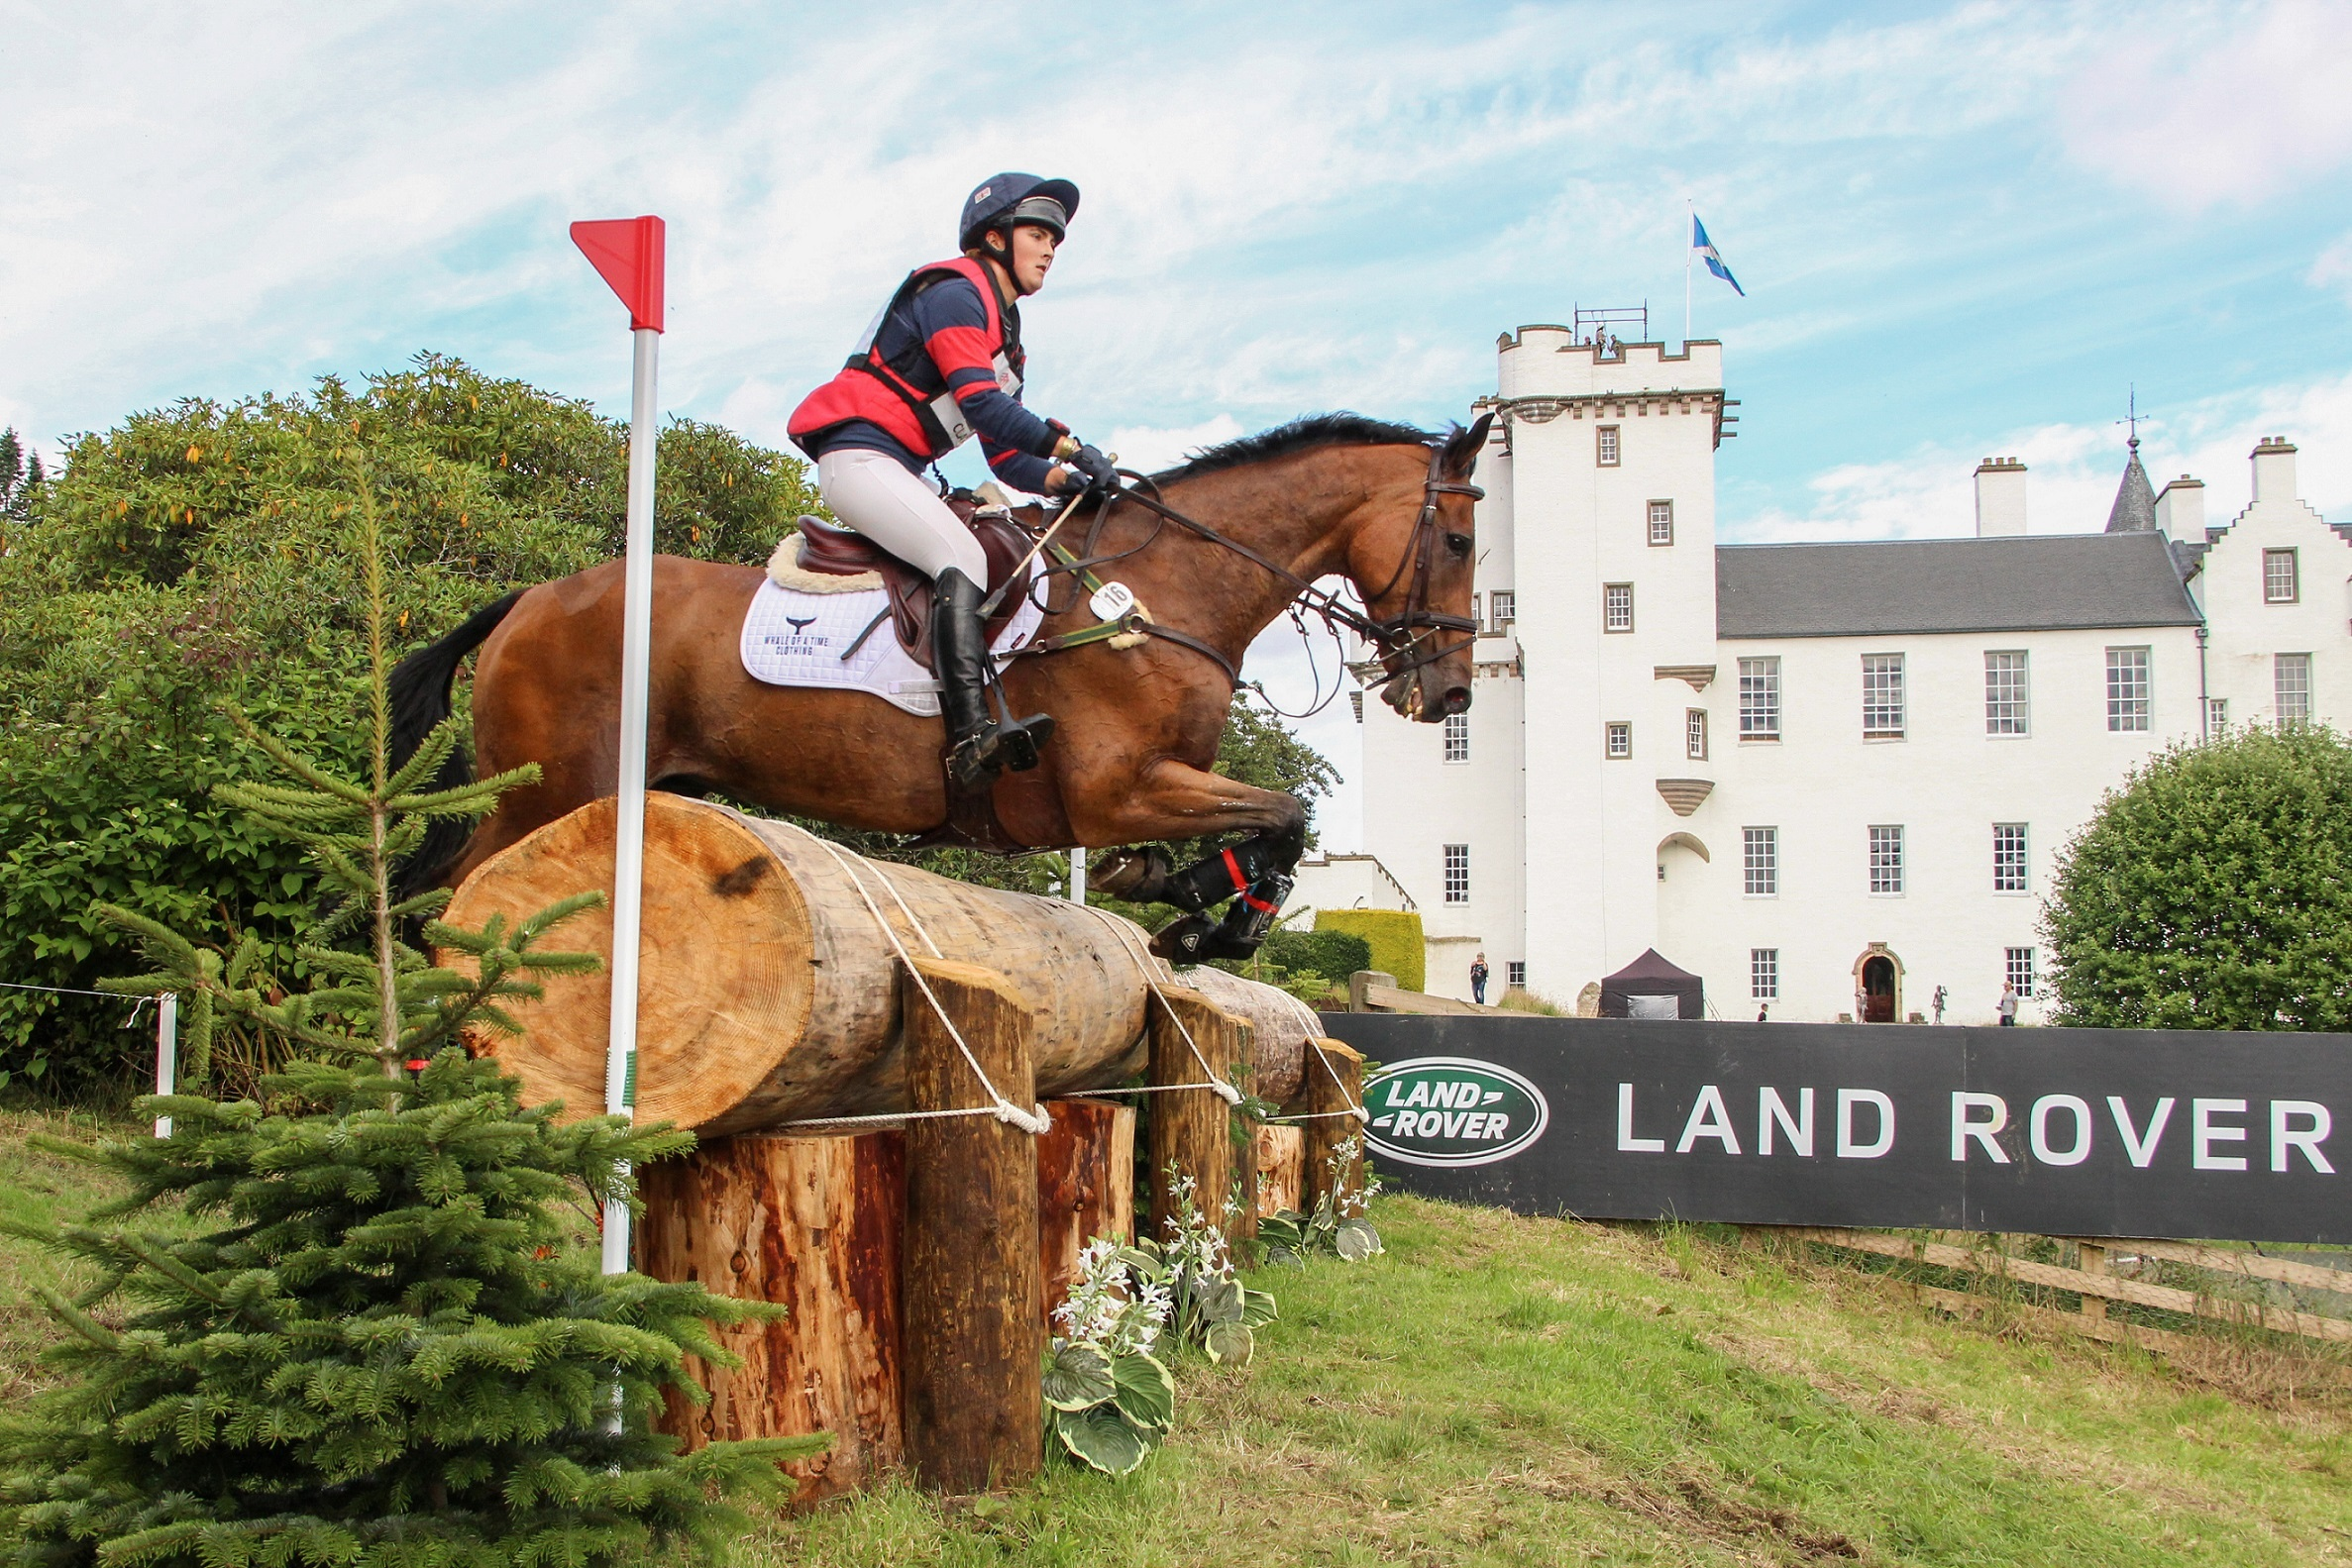 CBlair horse trials preview Blair Castle set to welcome 45,000 for International Horse Trials Photo: CHANTAL CROSBY